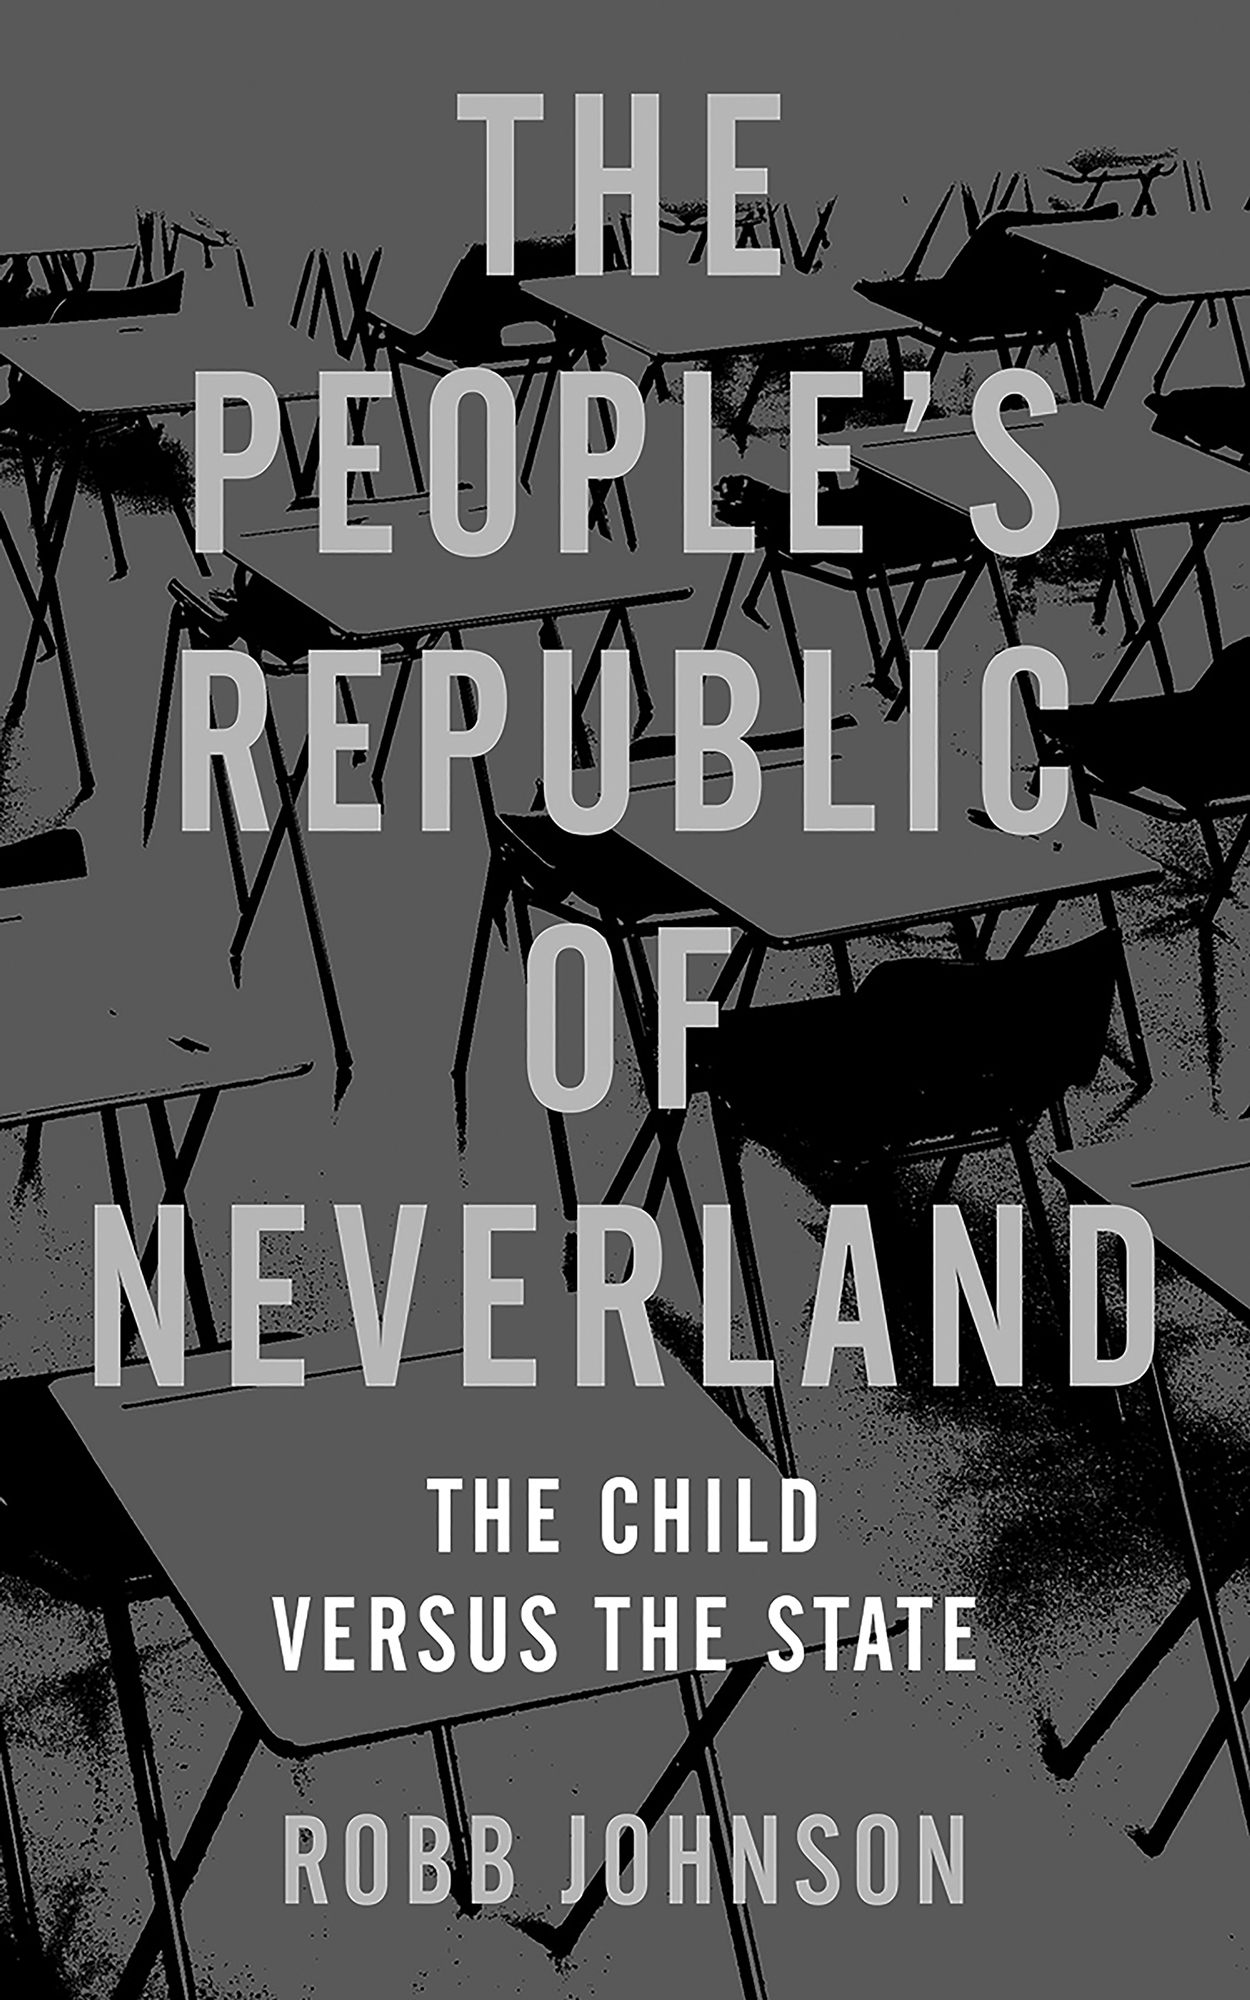 Book cover of The People's Republic of Neverland: The Child Versus the State by Robb Johnson. It's a grayscale image of the title and the author overlaid desks in a classroom.